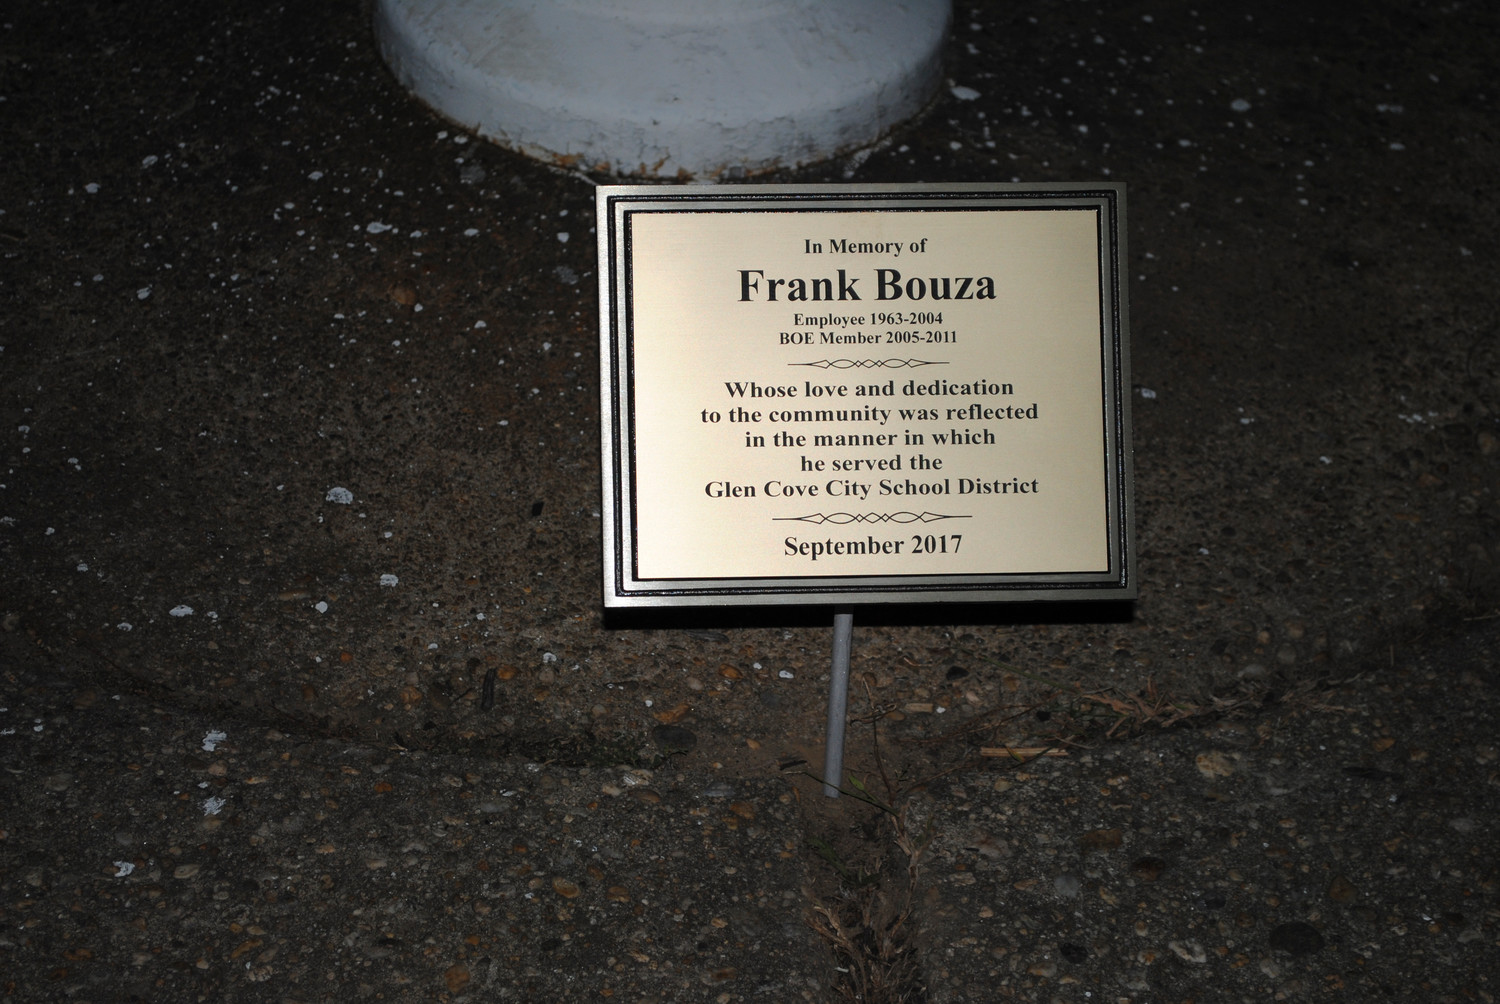 The plaque for Frank Bouza will be mounted in front of the flagpole at the high school.